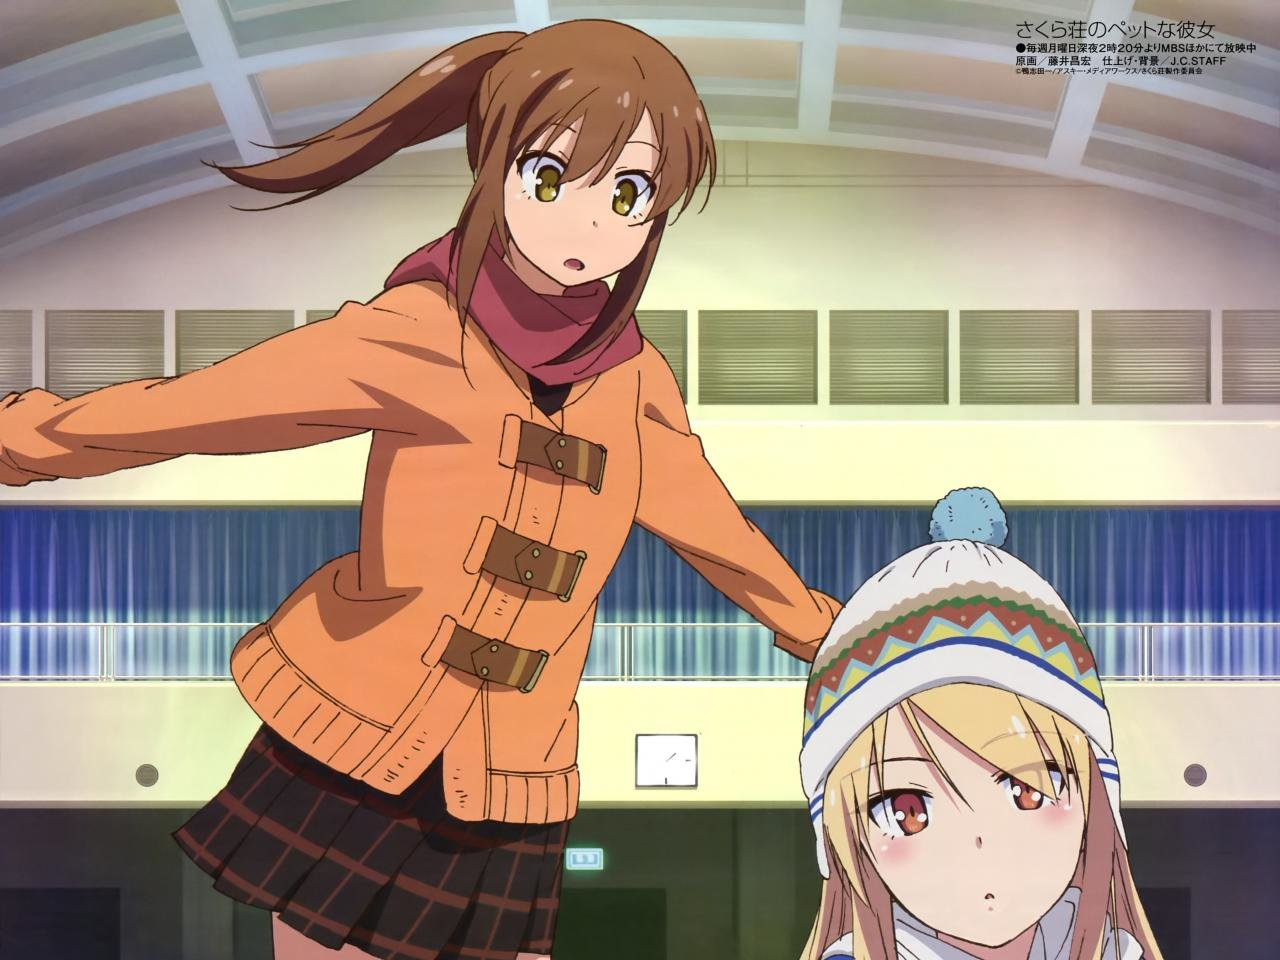 Download hd 1280x960 Sakurasou No Pet Na Kanojo PC wallpaper ID:68335 for free